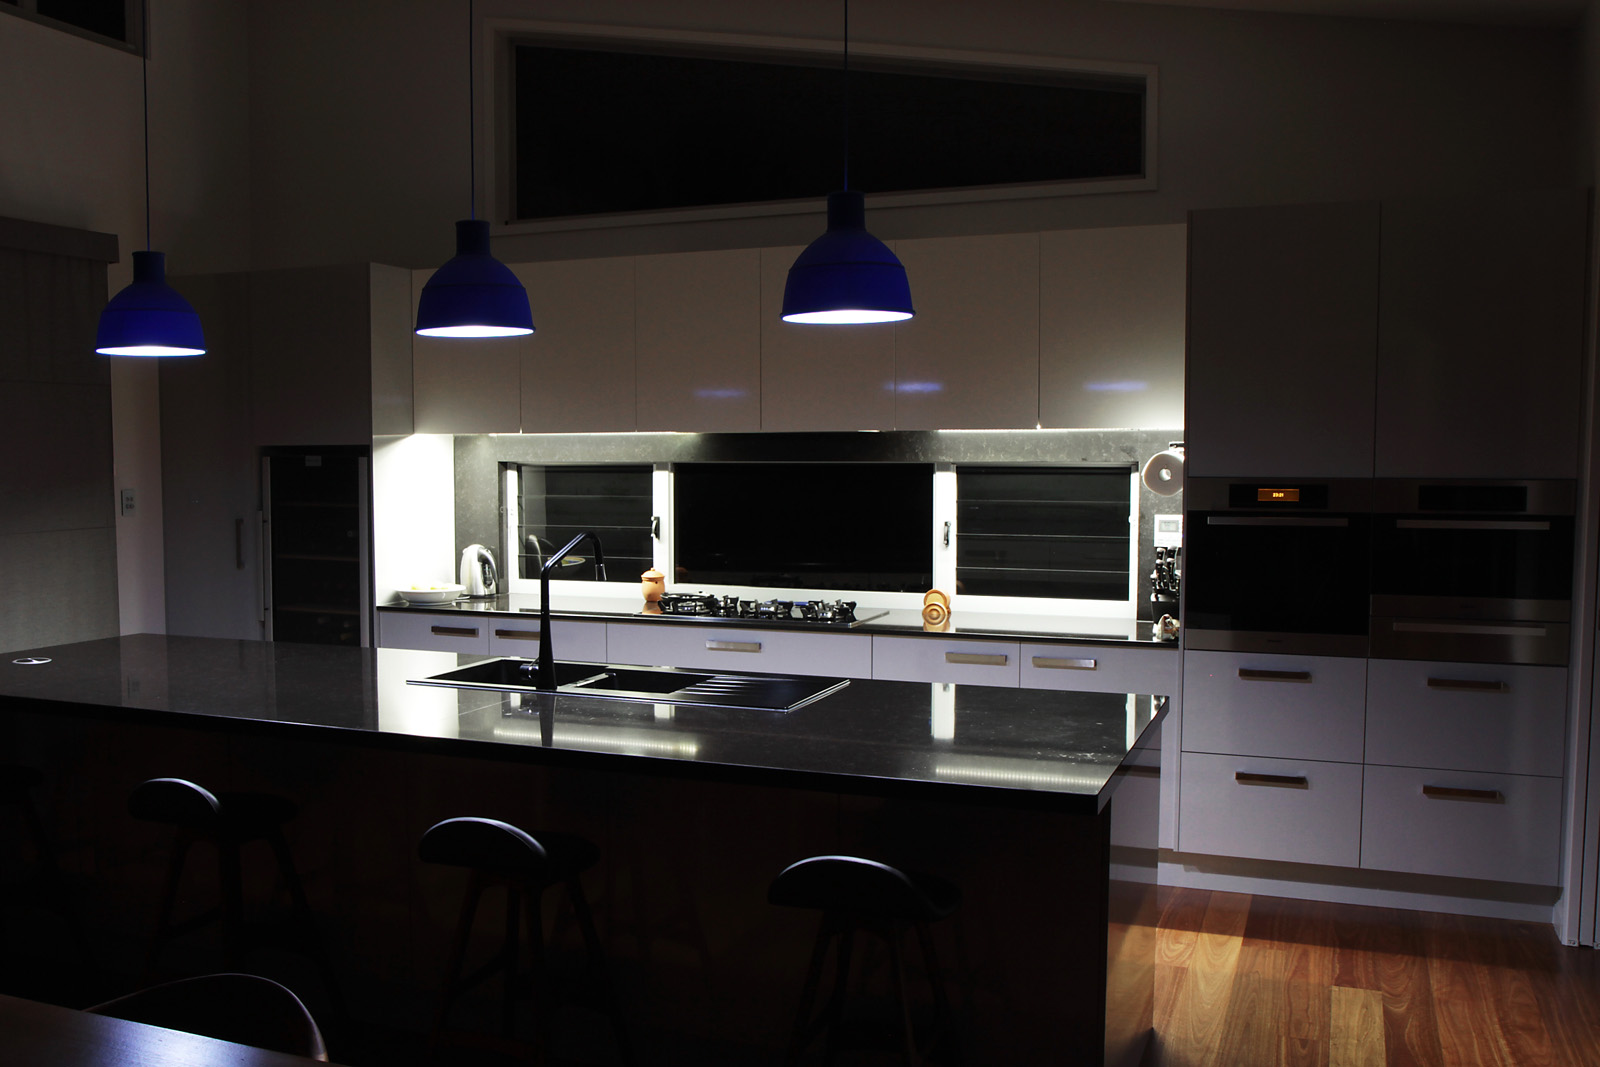 Is a FIXED window in the kitchen practical?